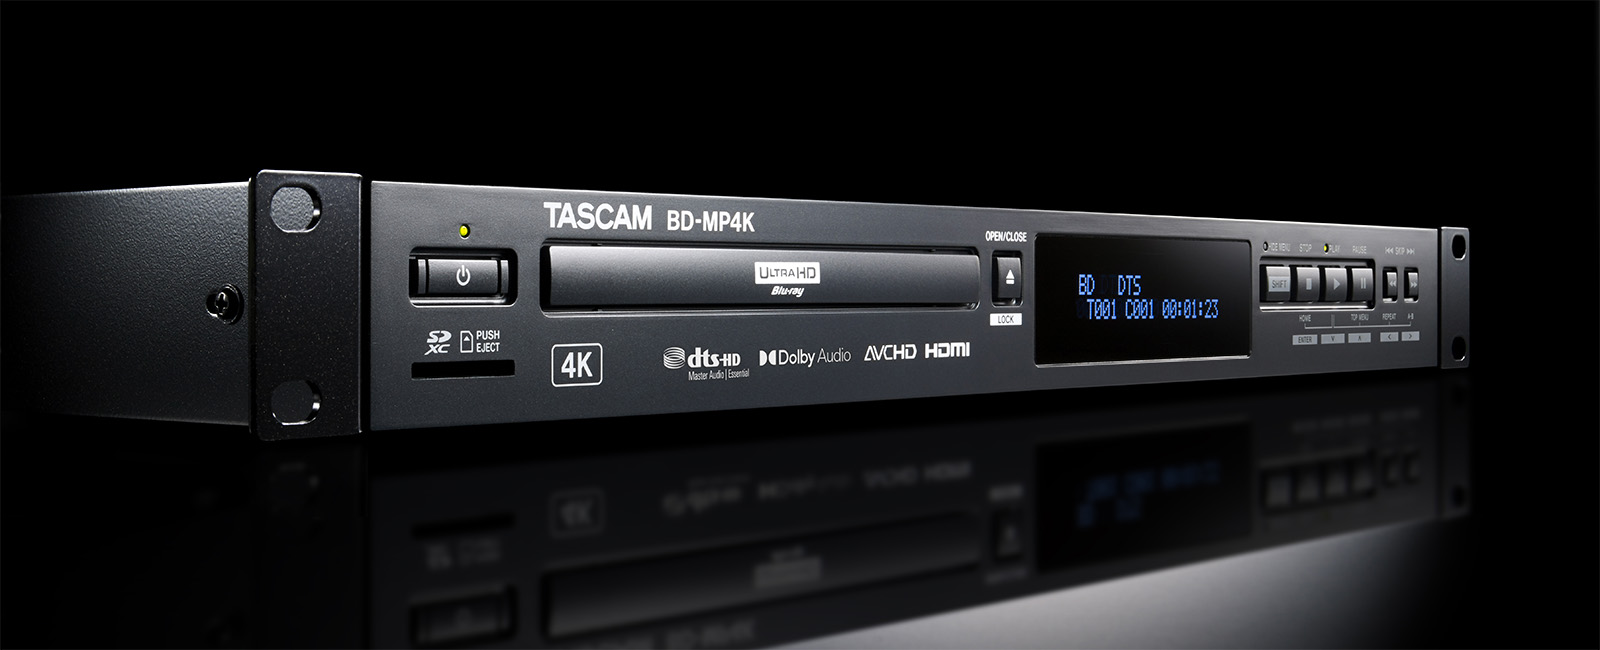 Tascam Expands Professional Blu Ray Line With Bd Mp4k Professional Grade 4k Uhd Blu Ray Player News Details Tascam United States